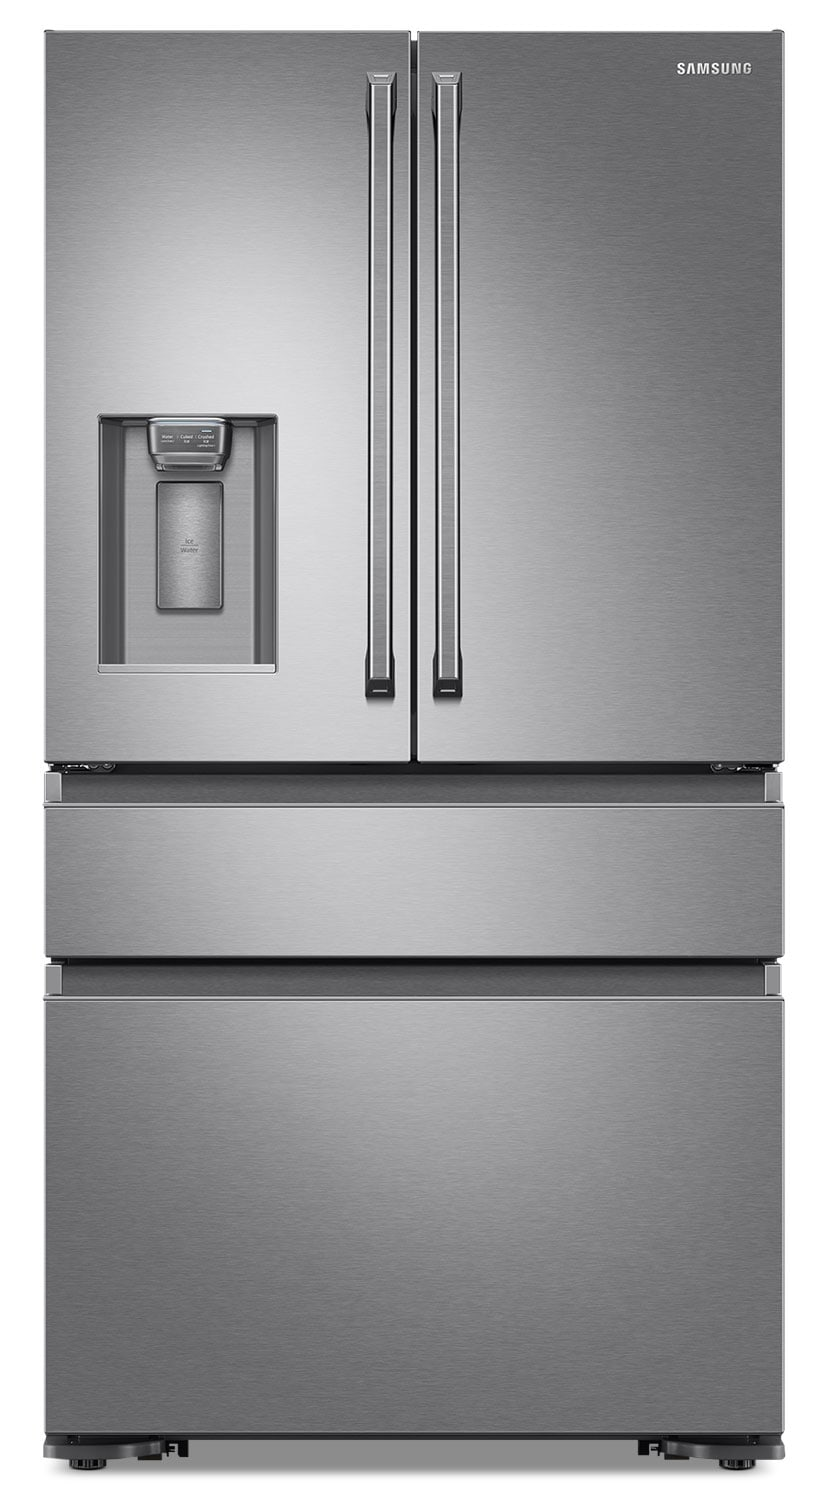 Samsung 22.6 Cu.Ft. French Door Refrigerator with FlexZone™ - RF23M8090SR